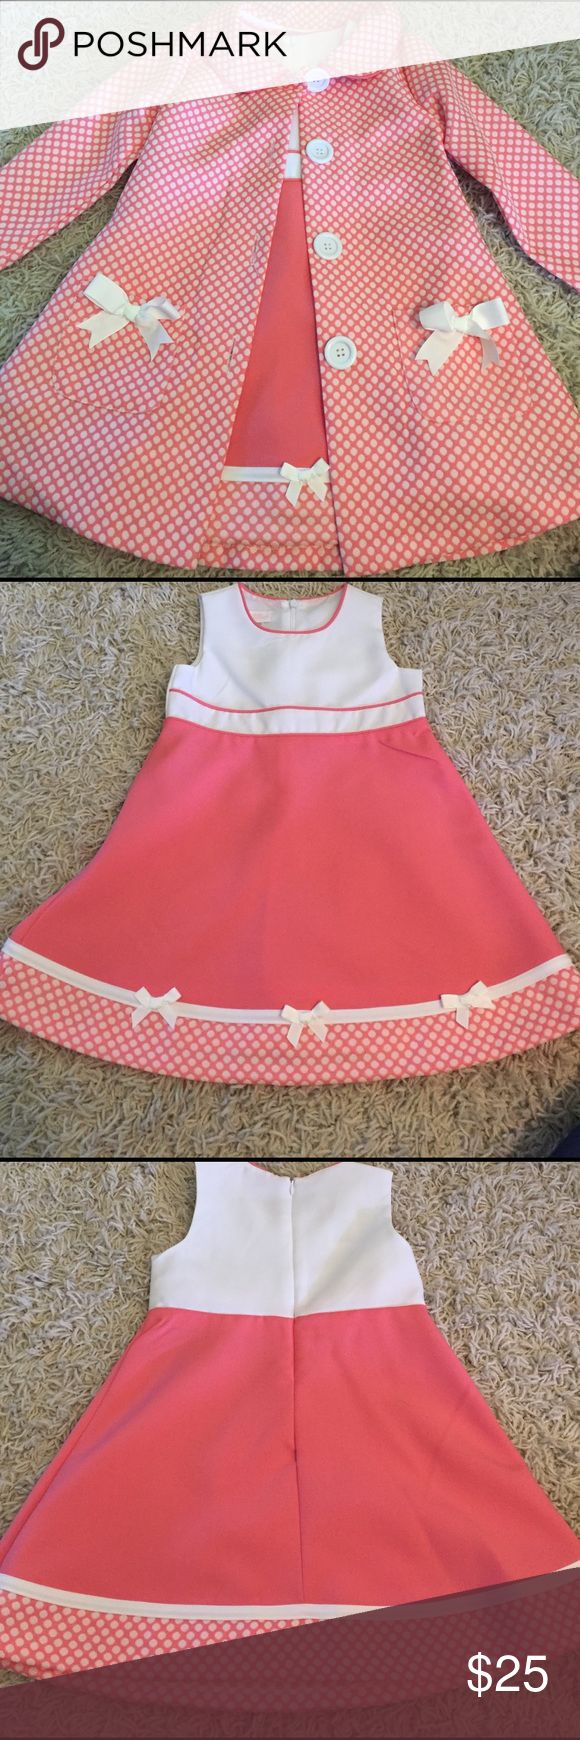 Coral toddler Easter dress with jacket Coral and white dress with polka fits at the bottom. Zipper in back of dress. Matching polka dot jacket to accessorize with dress! Perfect dress for Easter or spring! Brand new! Dresses Formal